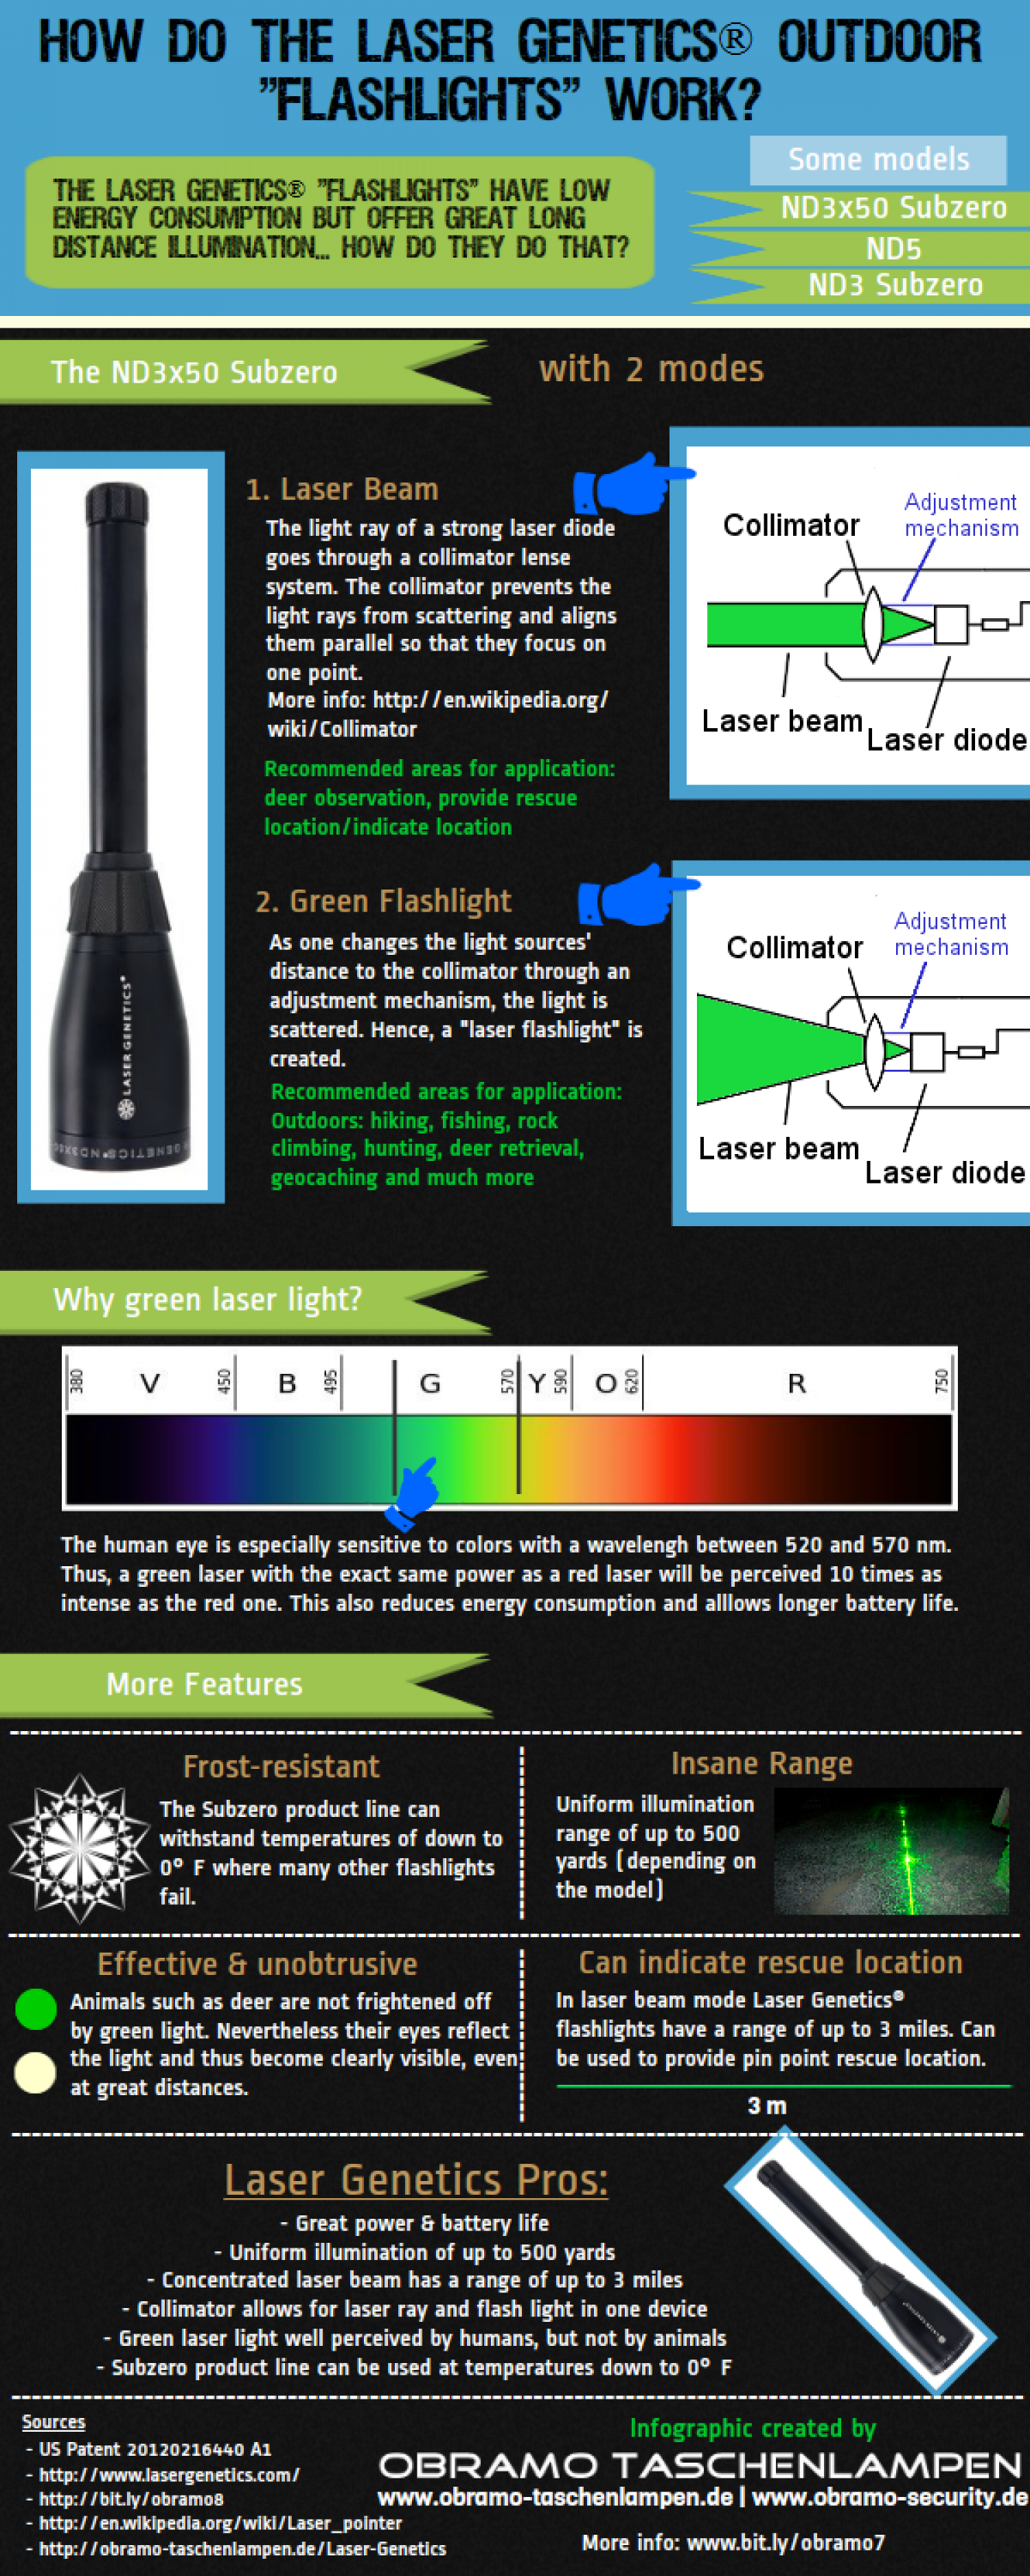 Outdoor Laser Flashlights Infographic